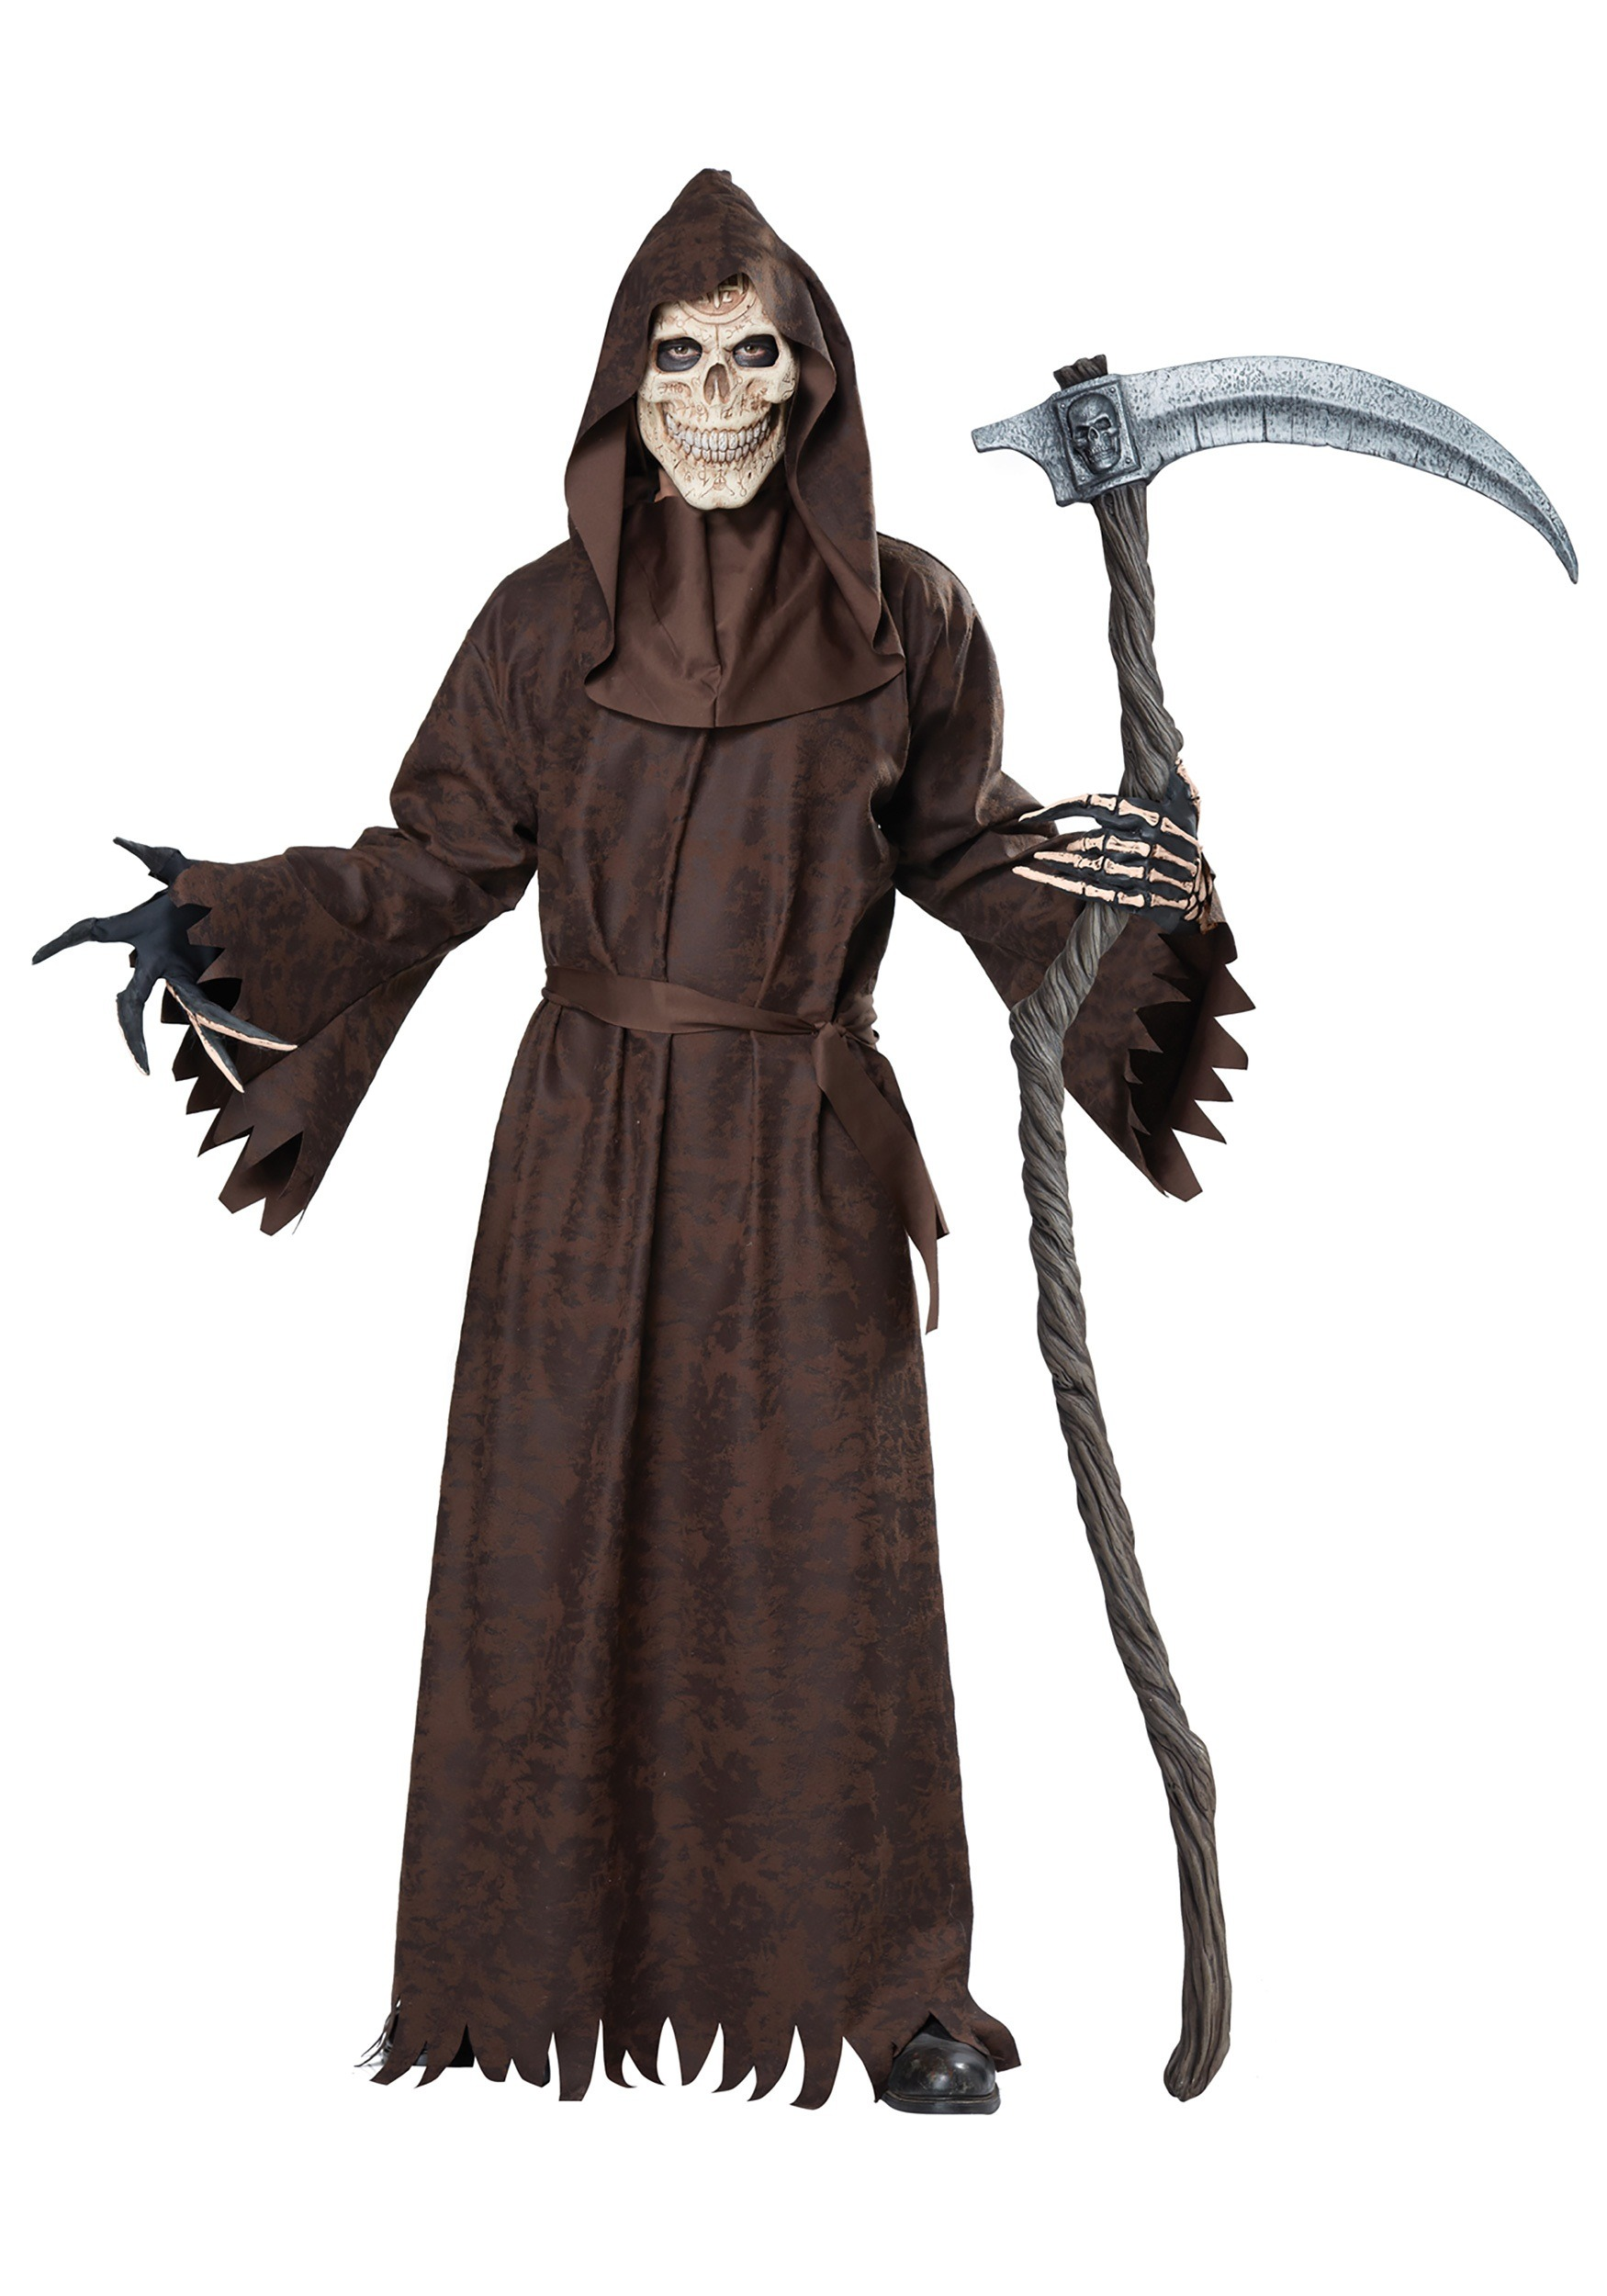 abc1cbe551 adult-ancient-reaper-costume.jpg